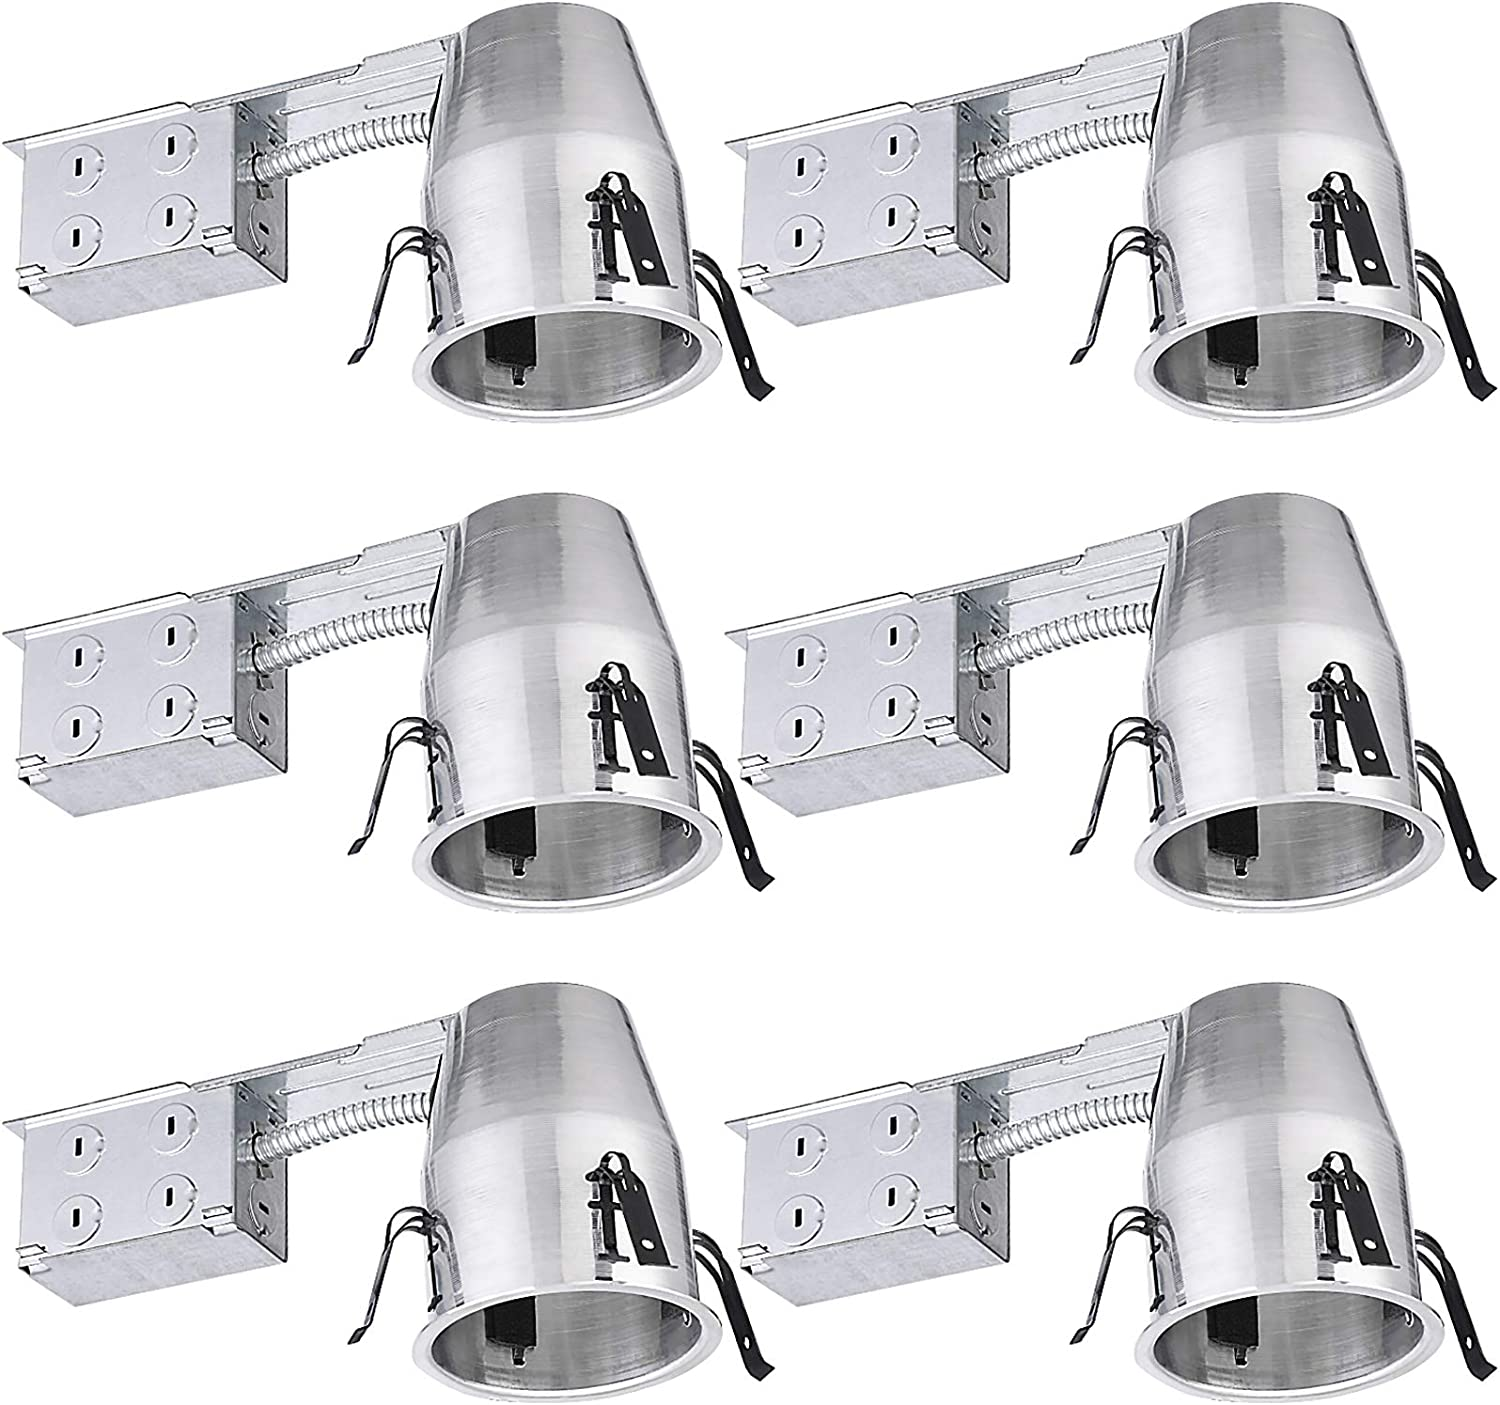 Torchstar 4 Inch Remodel Recessed Housing Air Tight Ic Remodel Aluminum Can E26 Socket Included For Led Recessed Lighting Ul Listed Pack Of 6 Amazon Com